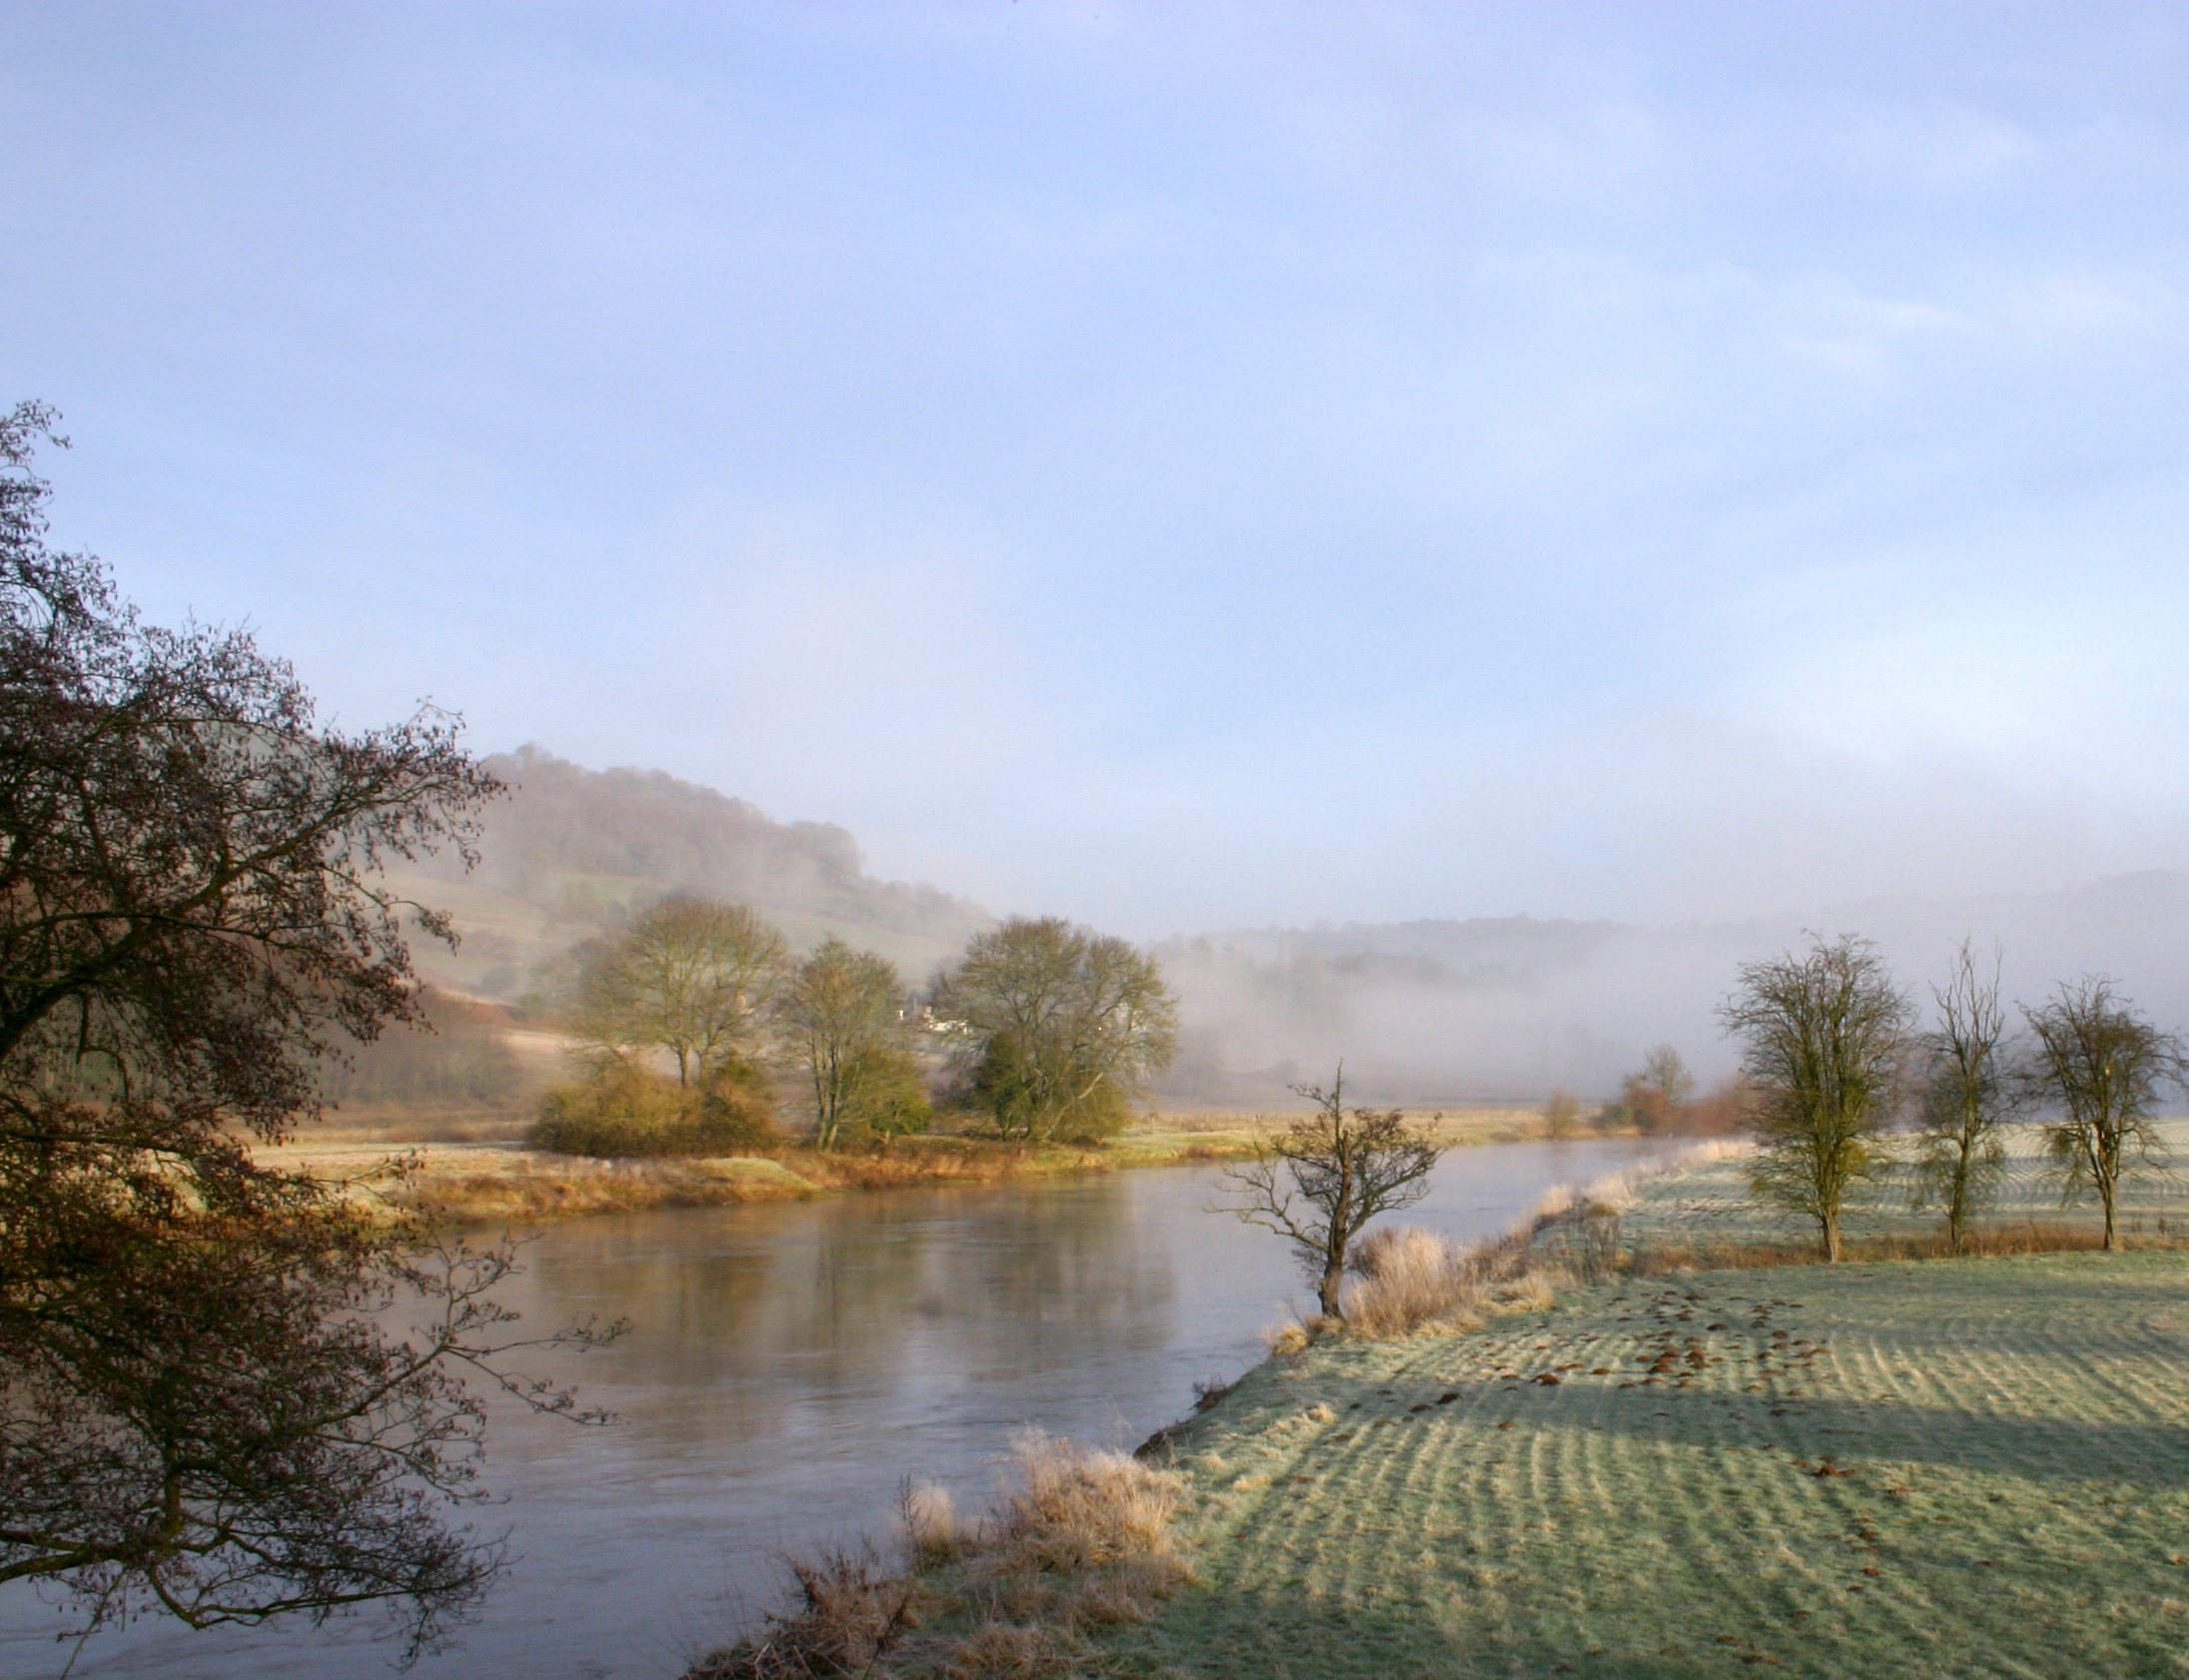 IT'S THE WEEKEND: The Great Outdoors - Two million visit Wye Valley every year